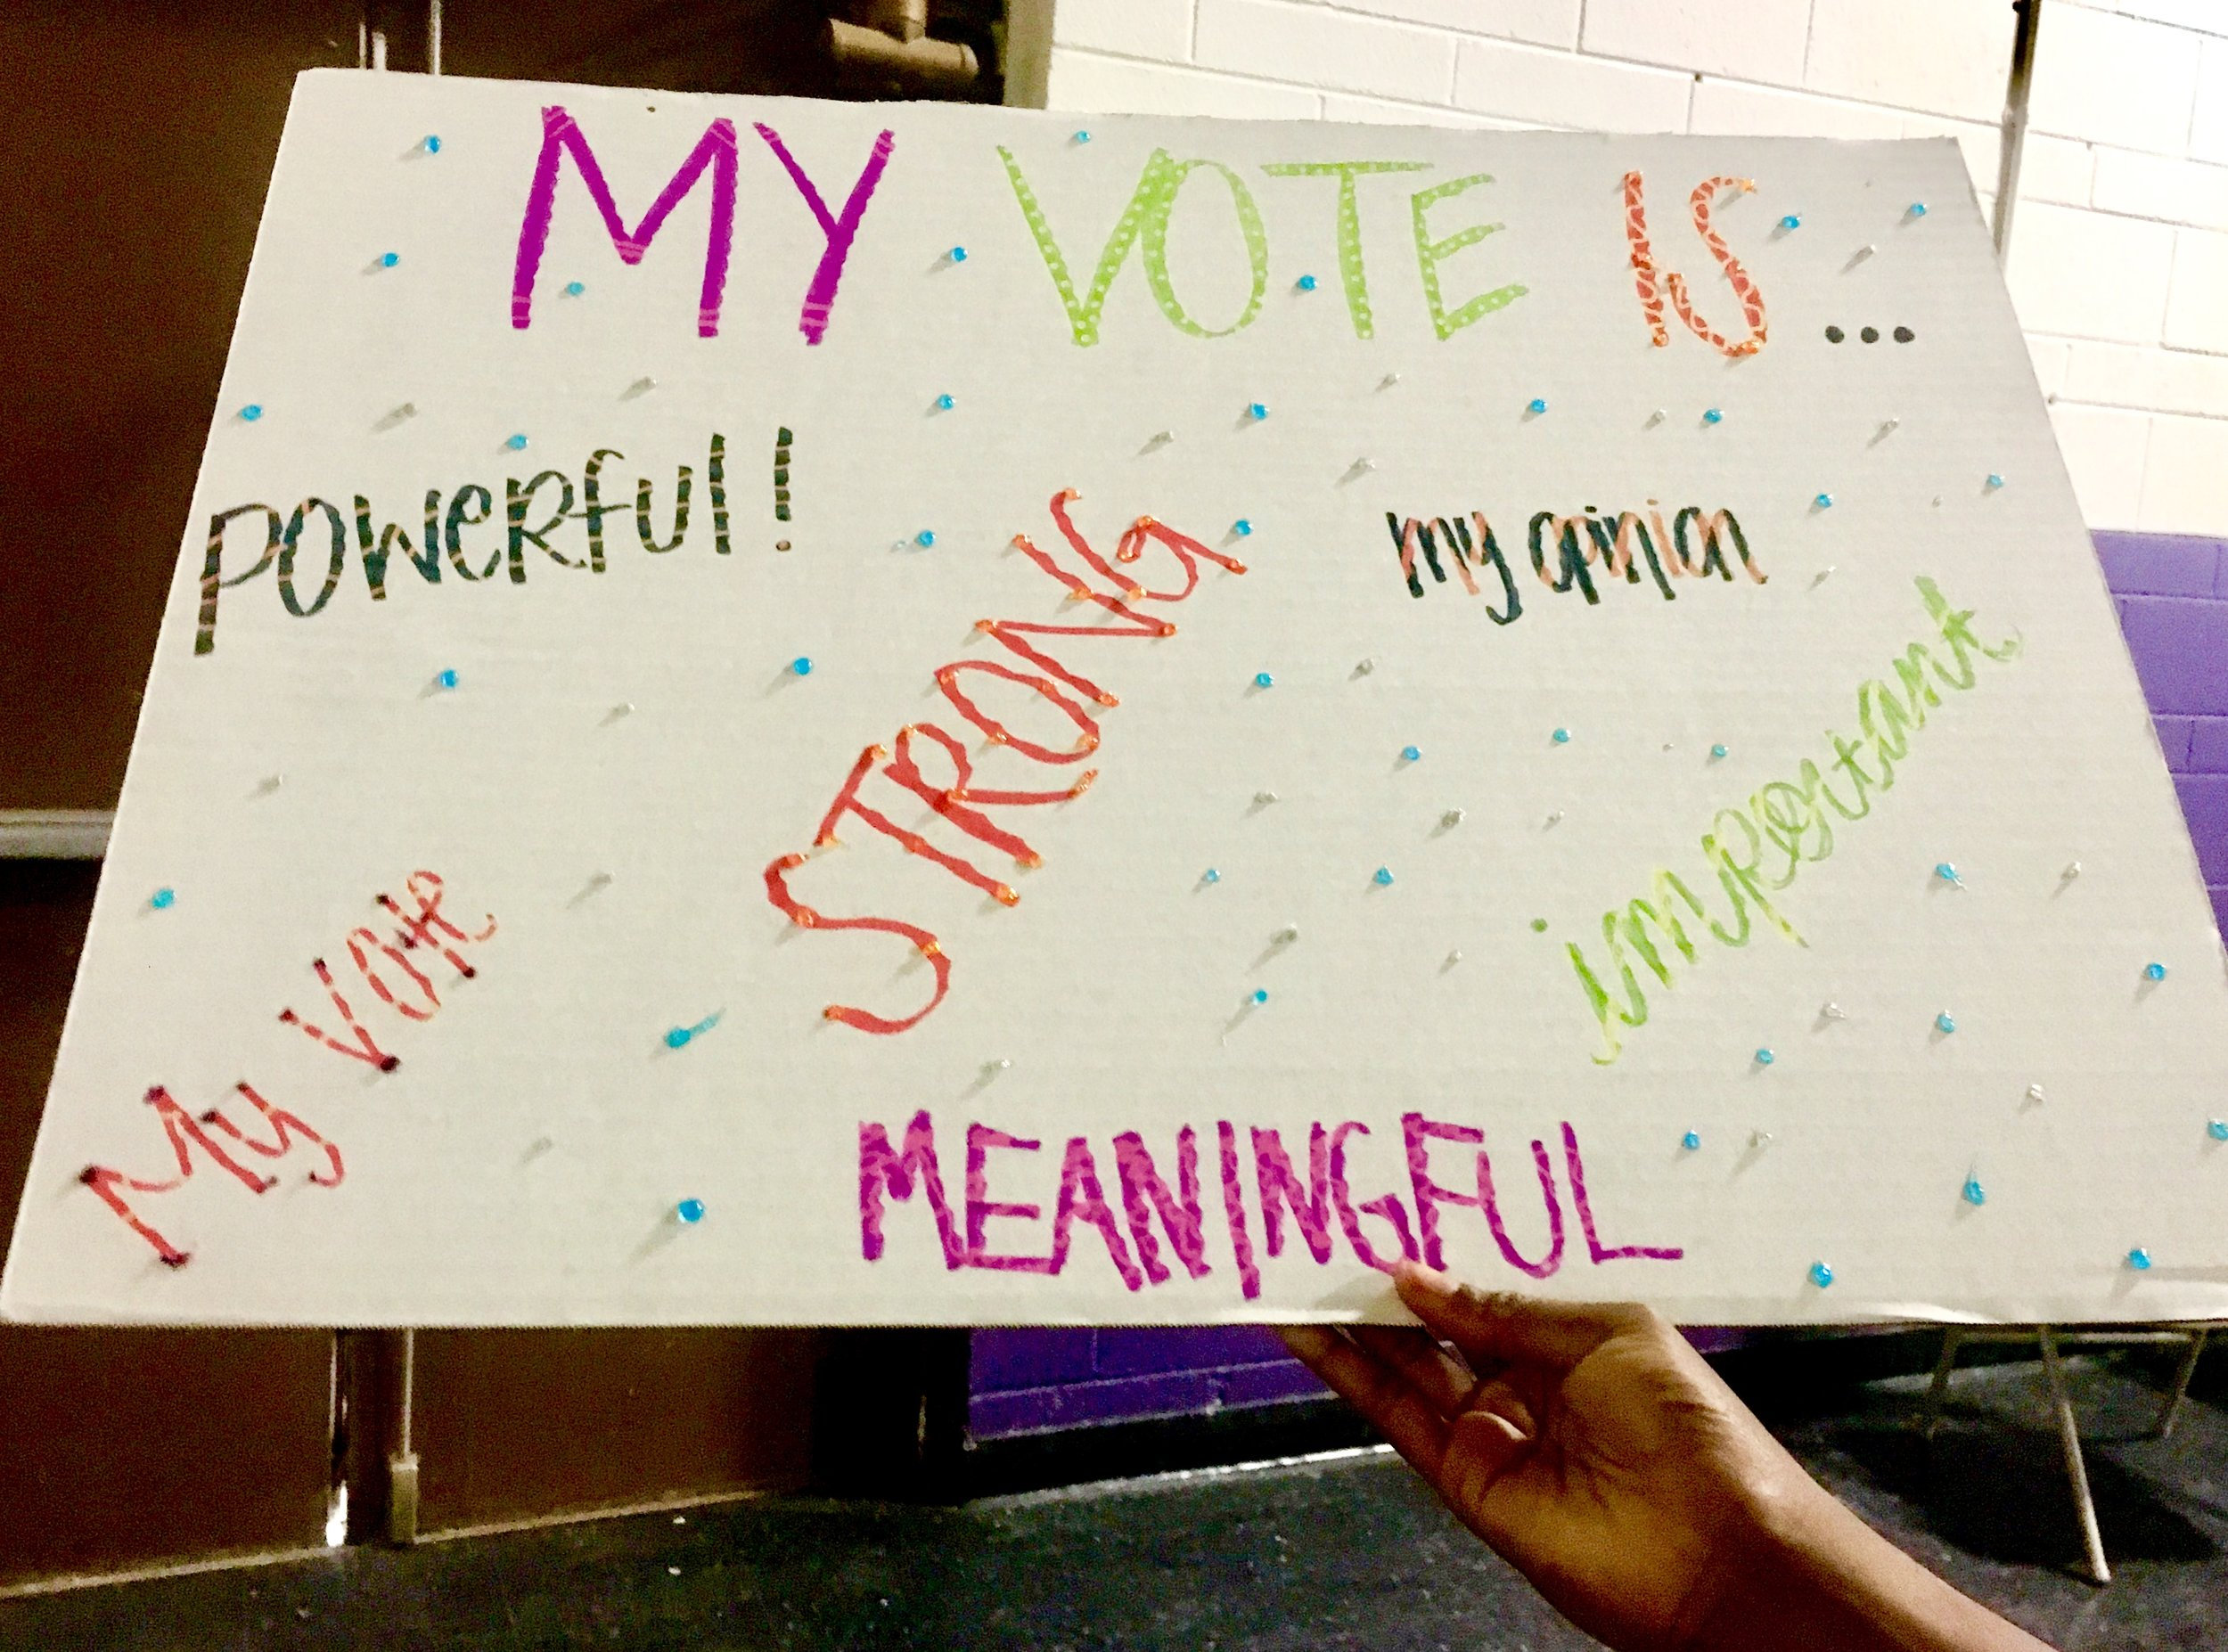 Photo from our voter registration #artattack at Juvenile Facilities in LA County